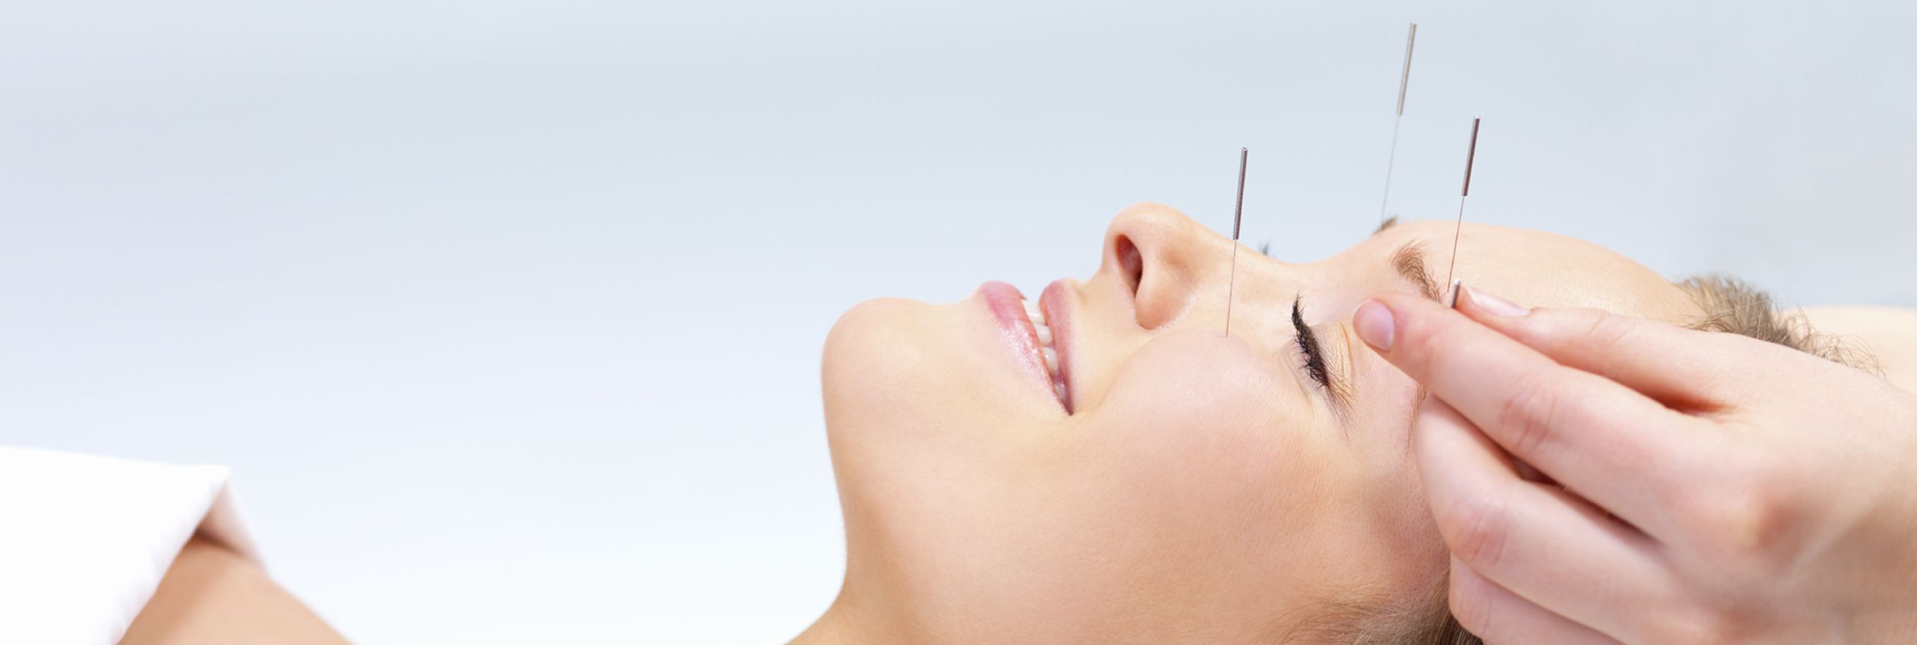 Acupuncture Philadelphia- Best Acupuncture Near Me